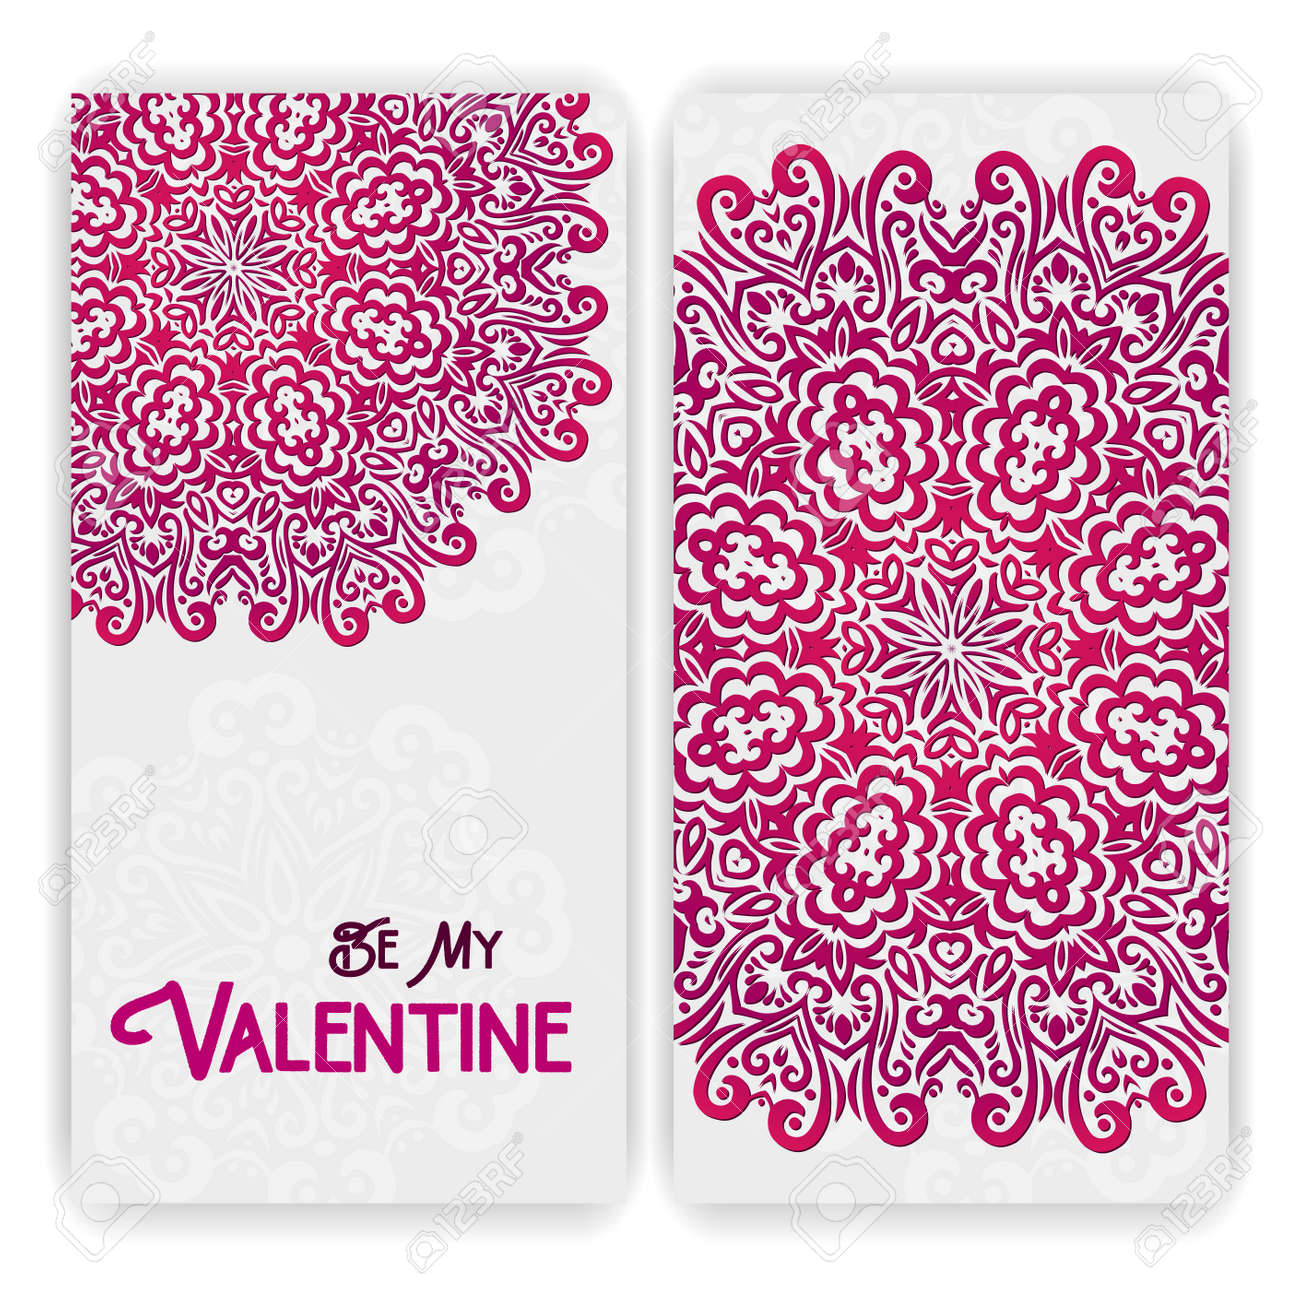 Valentine\'s Day Card Template. Lacy Romantic Indian Style Invitation ...